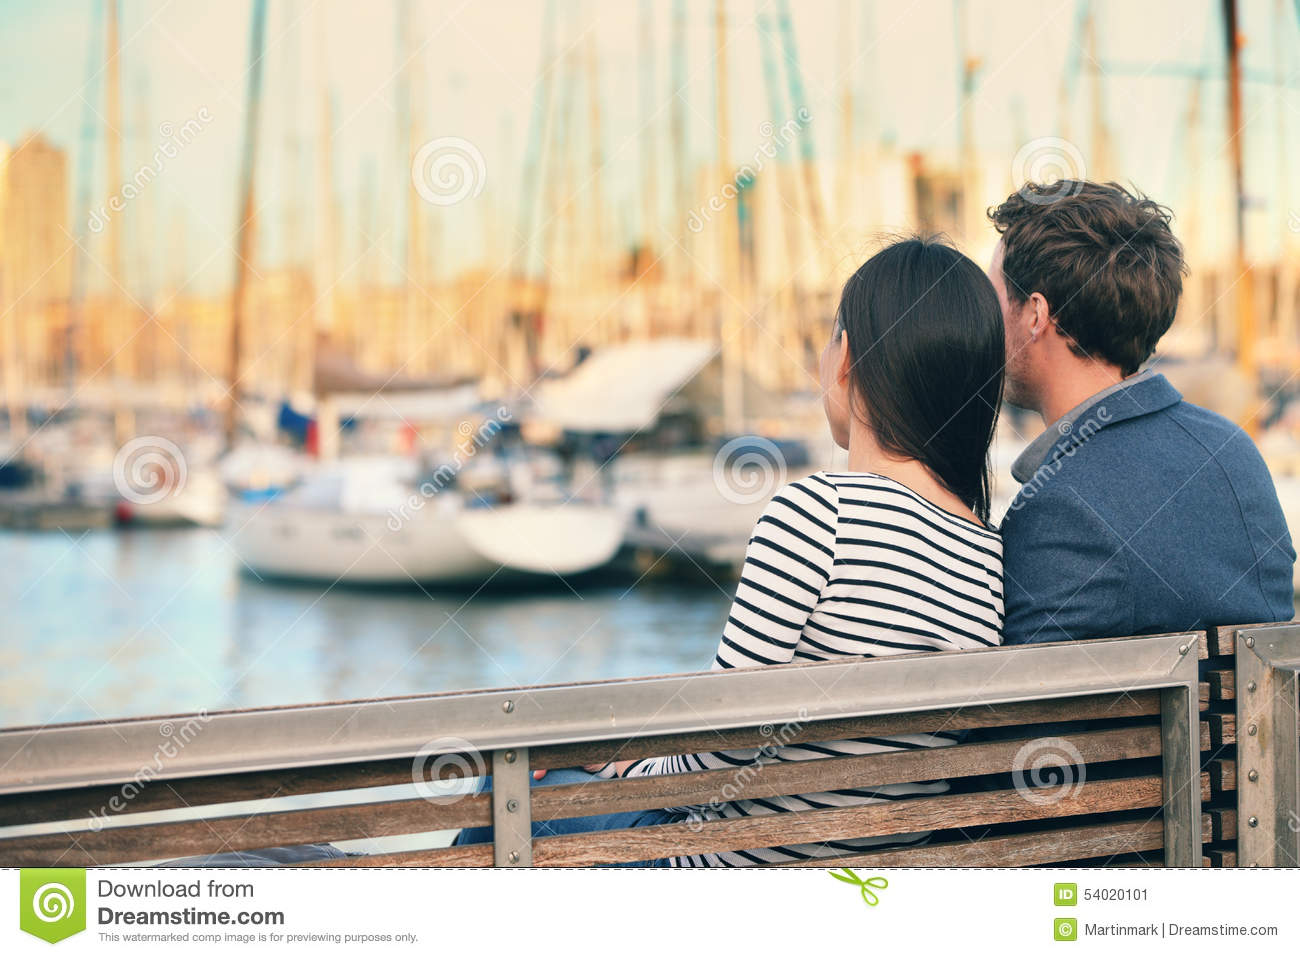 lovers dating pictures Latin love search - free latin dating - latin singles seeking romance, love and marriage find a latin wife or husband or make new friends not latin brides latin love search.